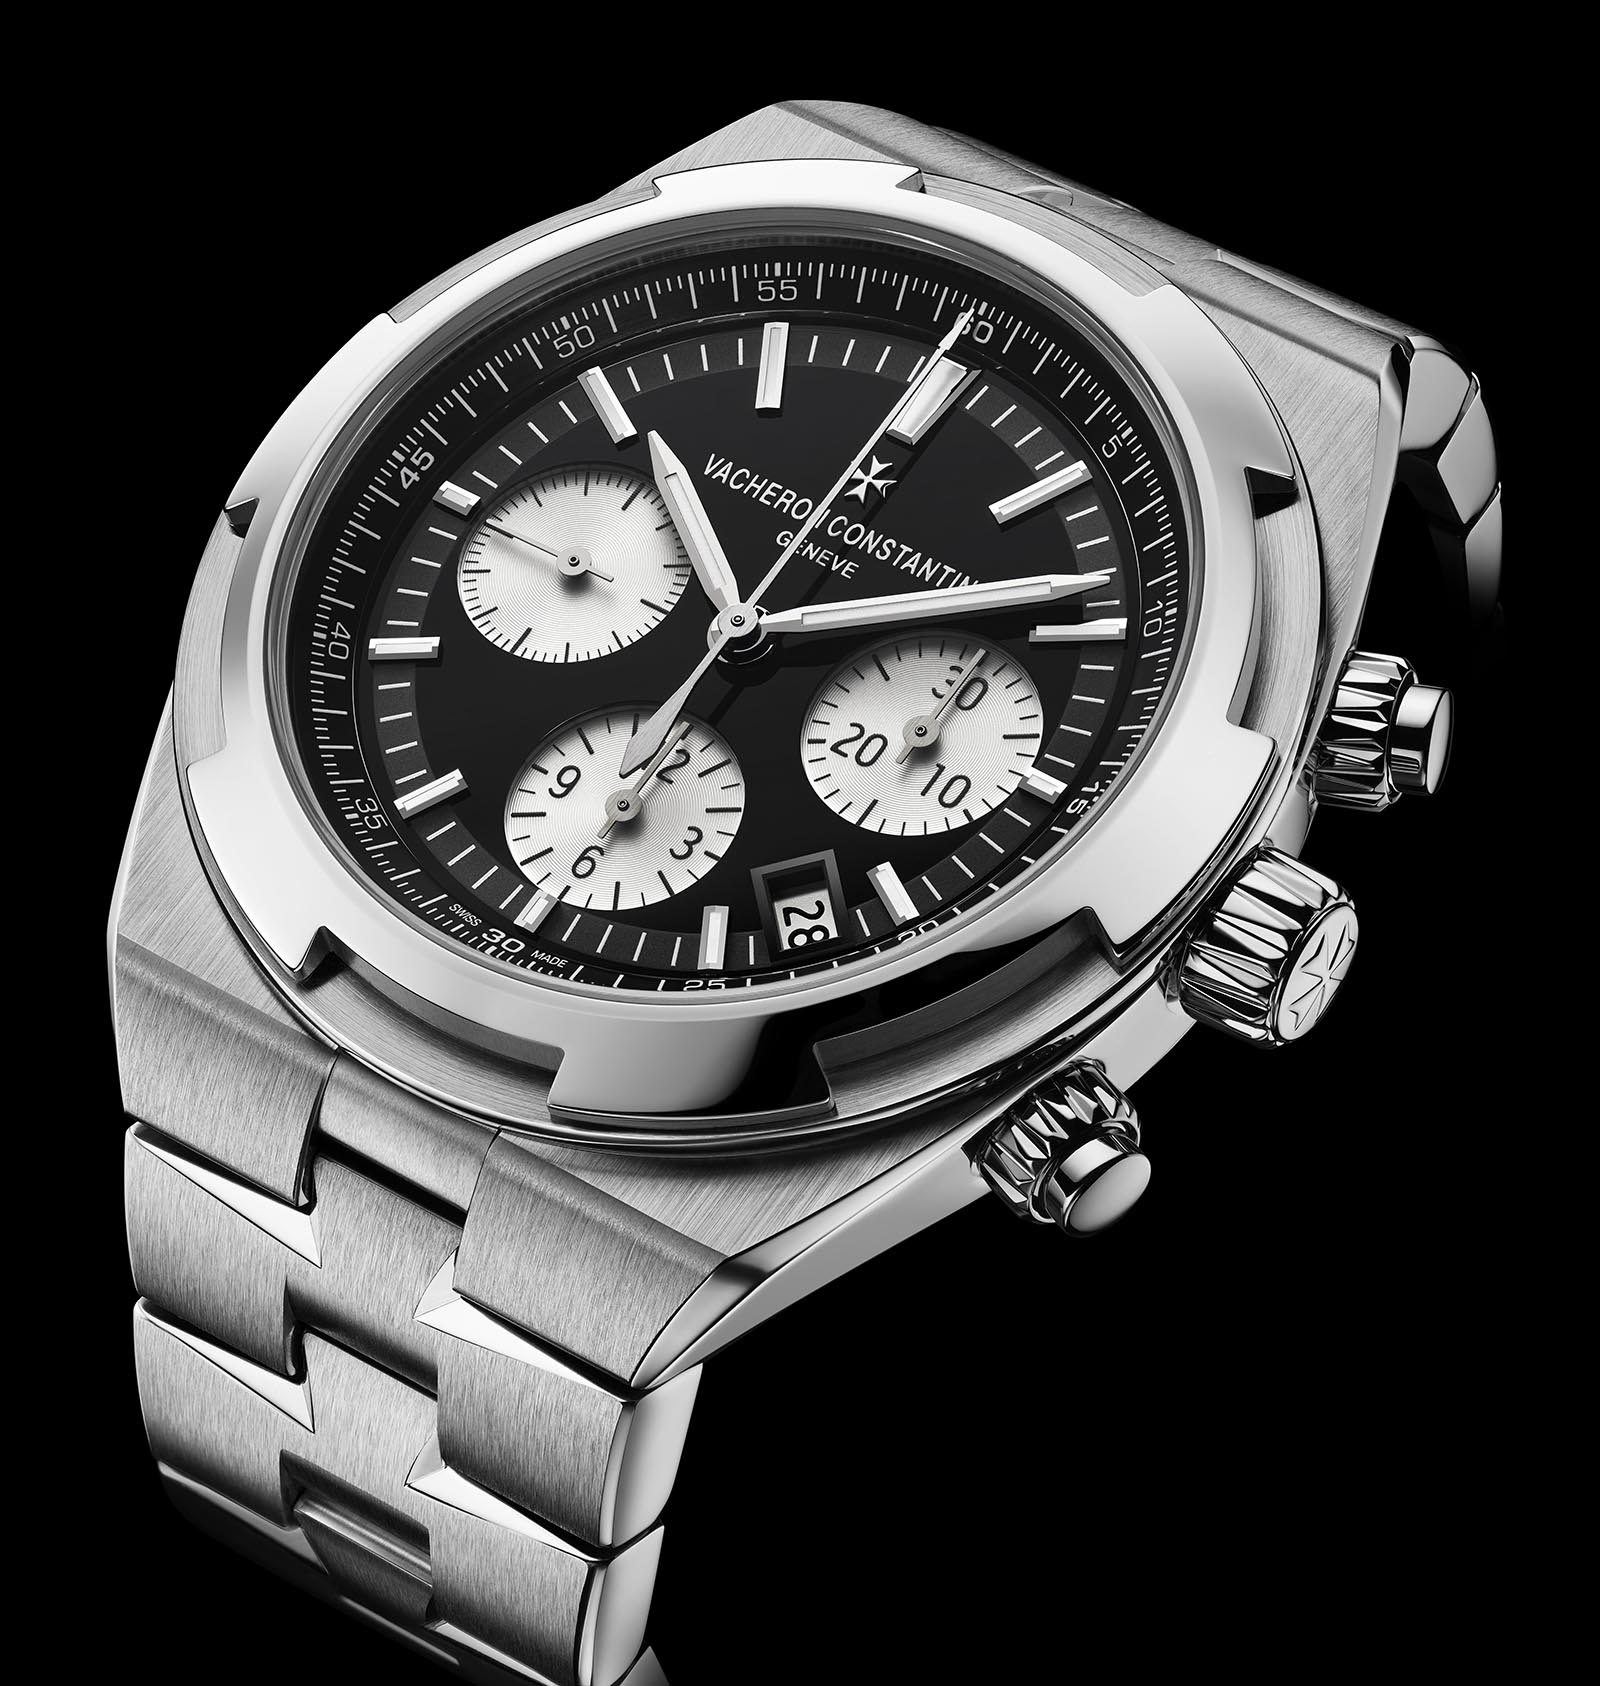 Vacheron Constantin Introduces the Overseas Automatic and Chronograph with Black Dials